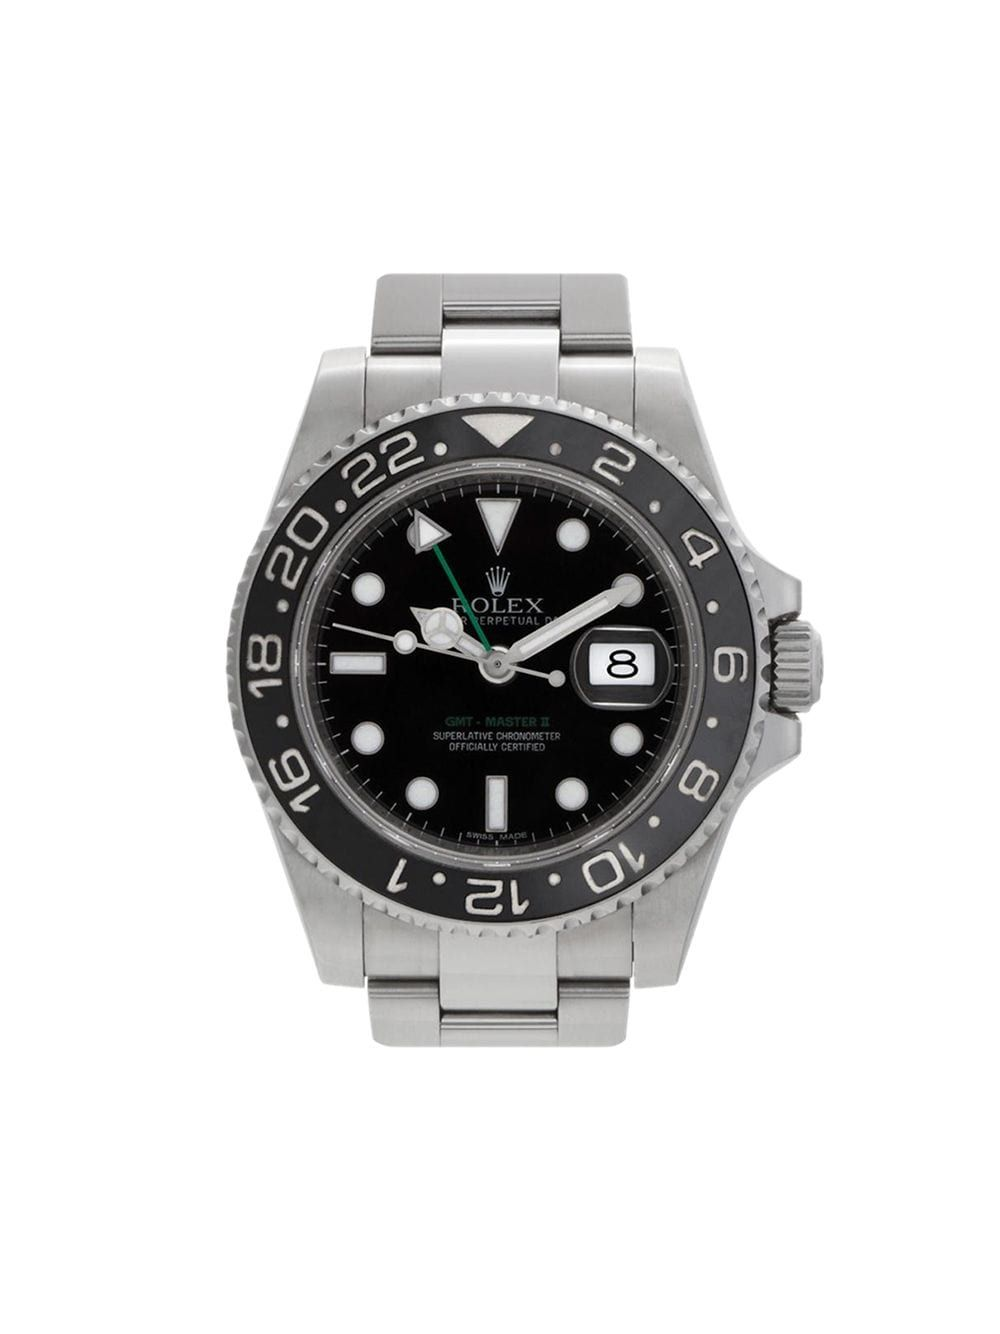 Rolex 2013 Pre Owned Gmt Master Ii 40mm Farfetch In 2020 Rolex Rolex Gmt Master Ii Luxury Timepieces